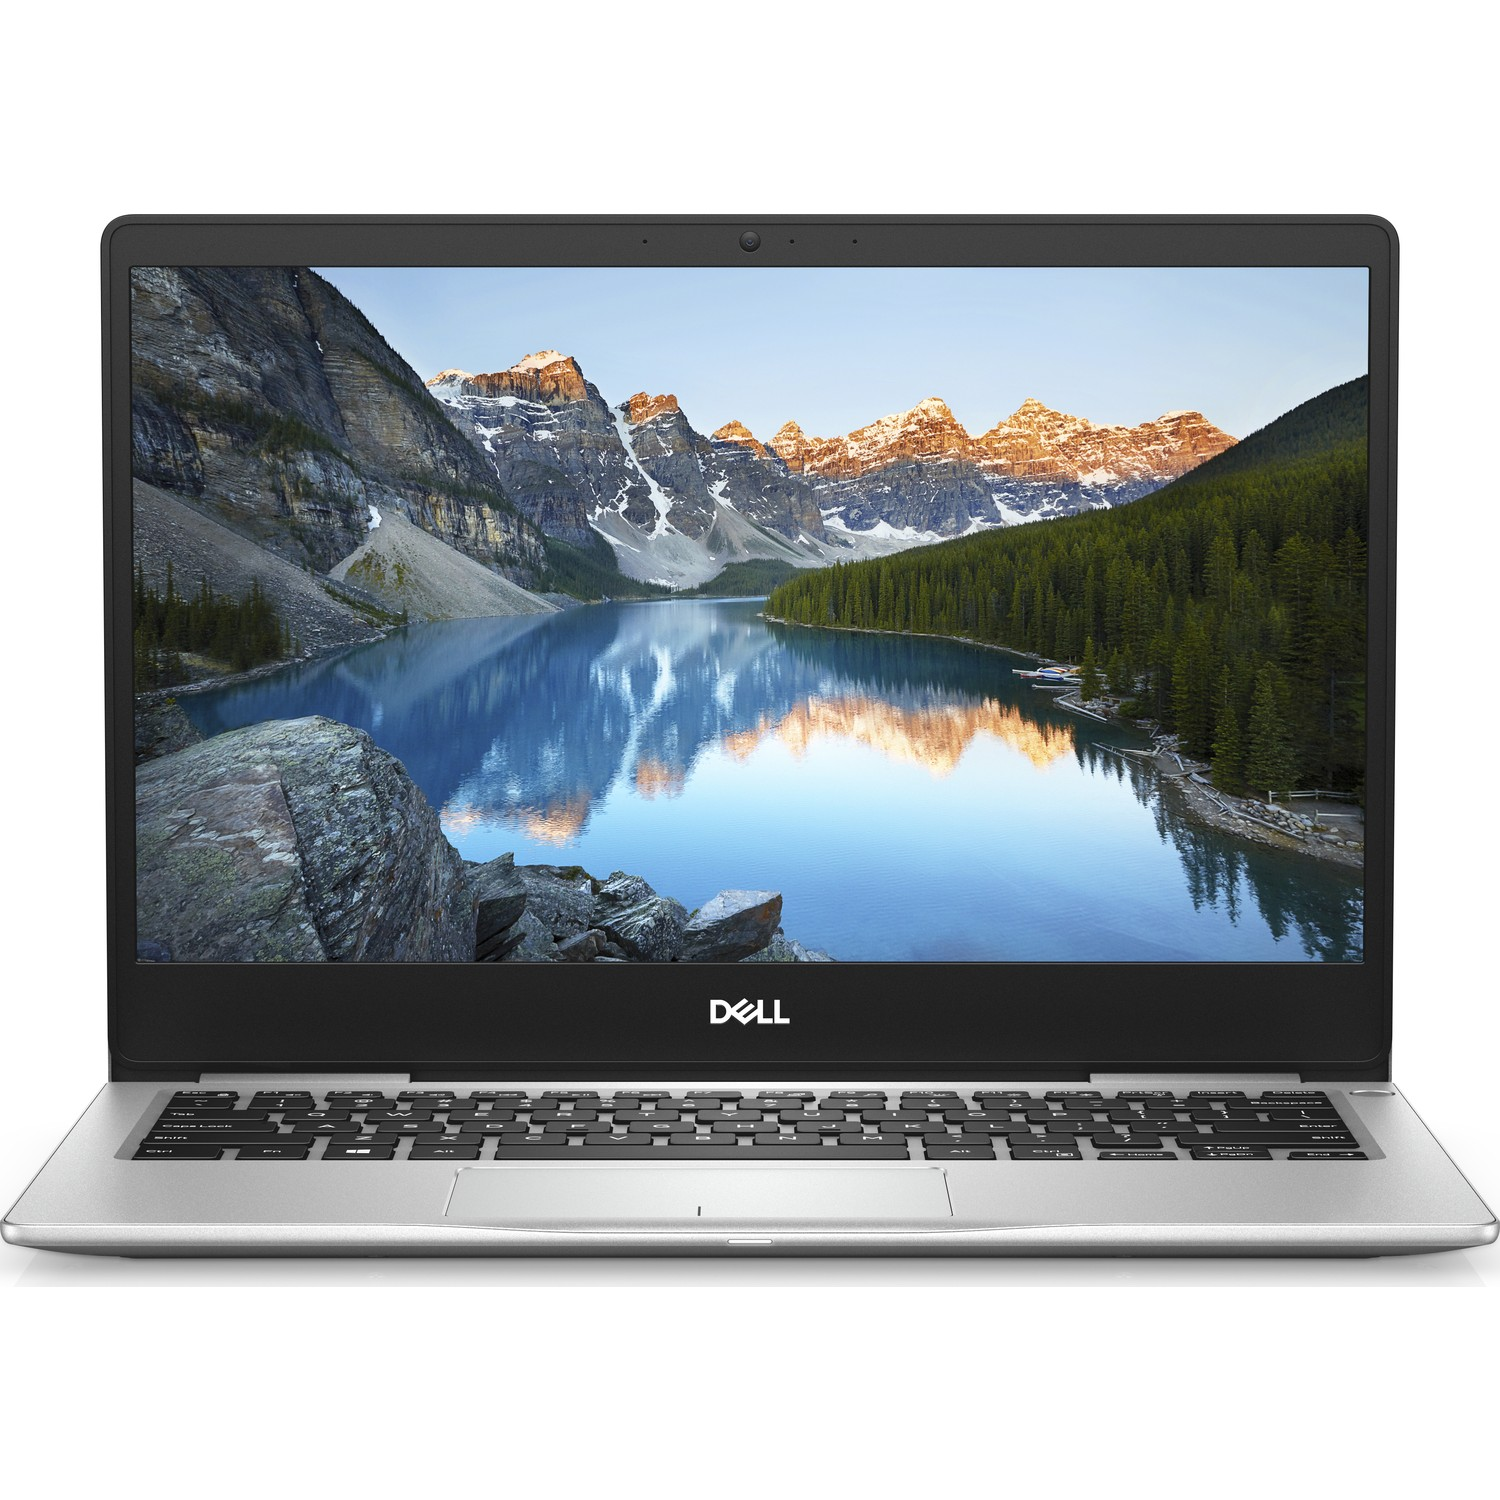 "DELL INSPIRON 7380-FNT56W82C I7-8565U 8GB 256GB SSD O/B VGA 13.3"" FHD IPS WIN10 NOTEBOOK"